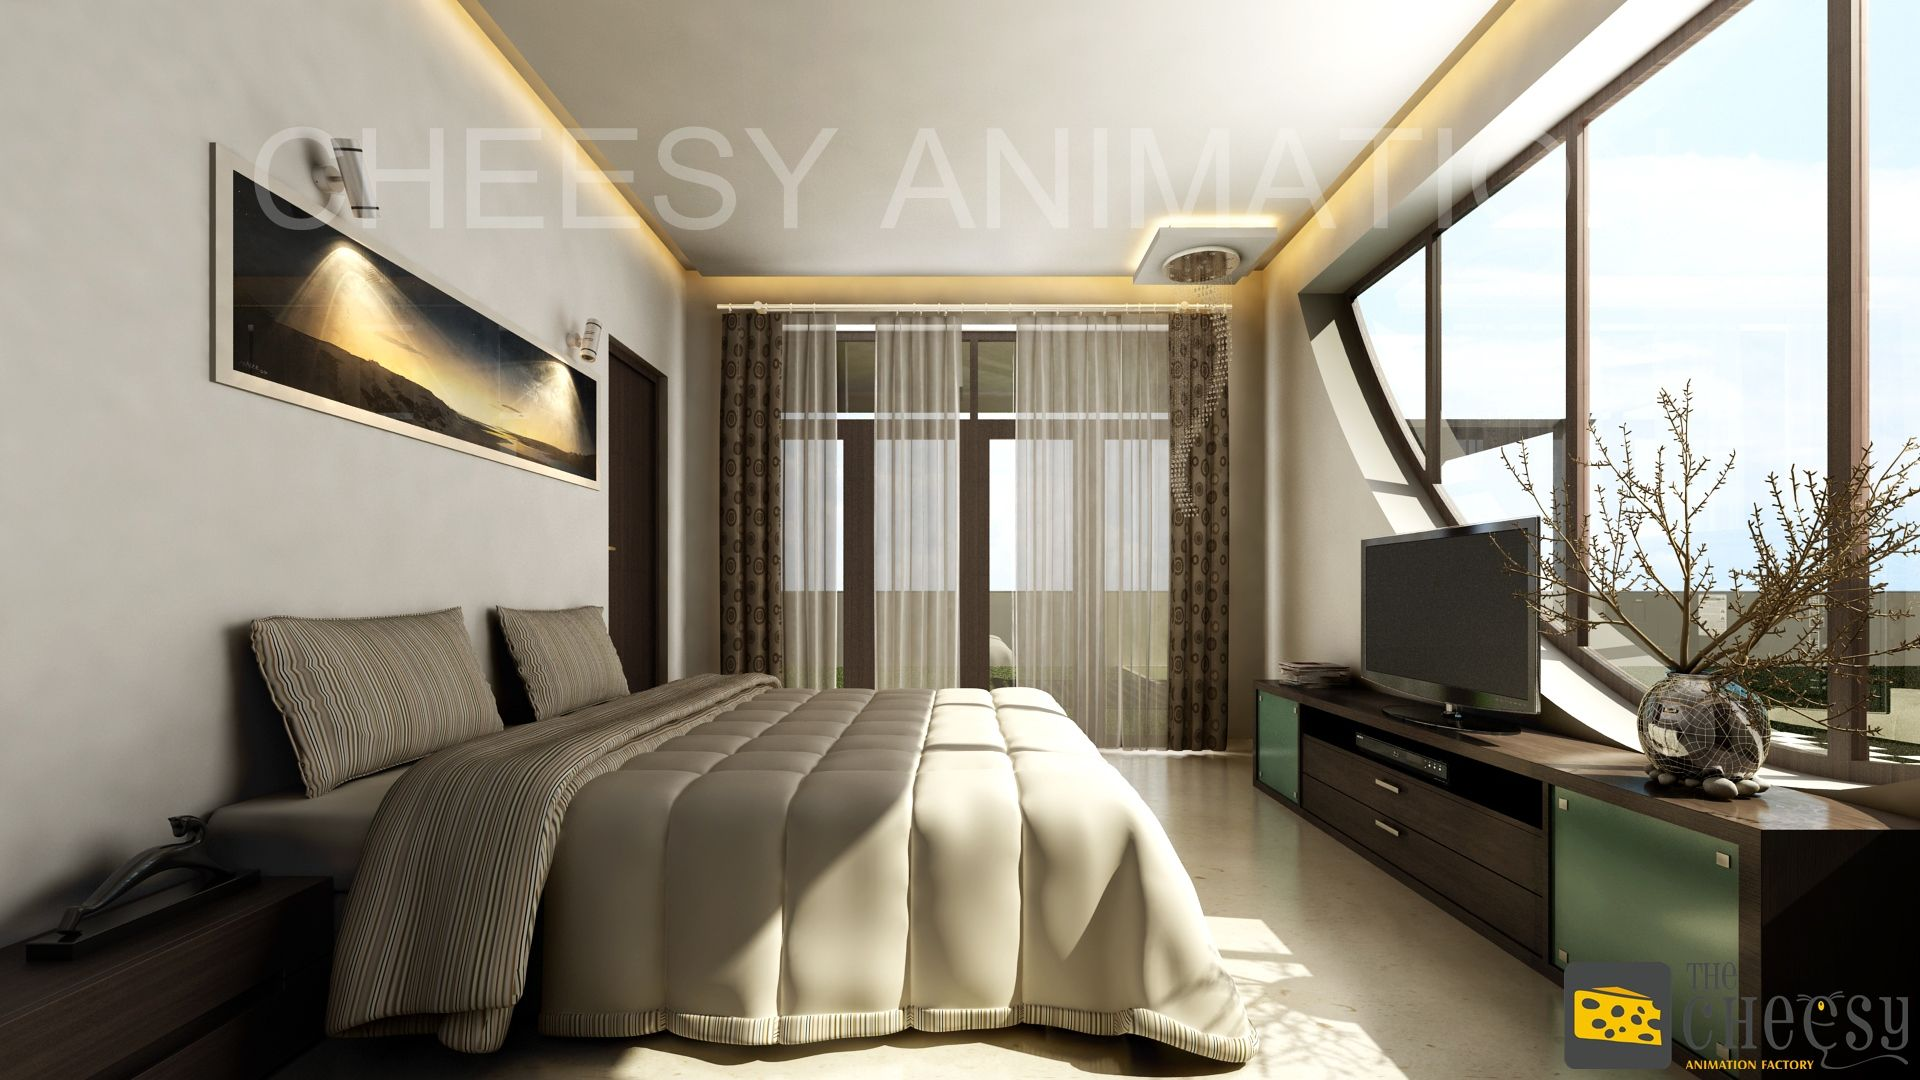 The Cheesy Animation Company Offering Services Is Interior Rendering And  Design, Residential, Commercial For Studio India, Ahmedabad, Mumbai.